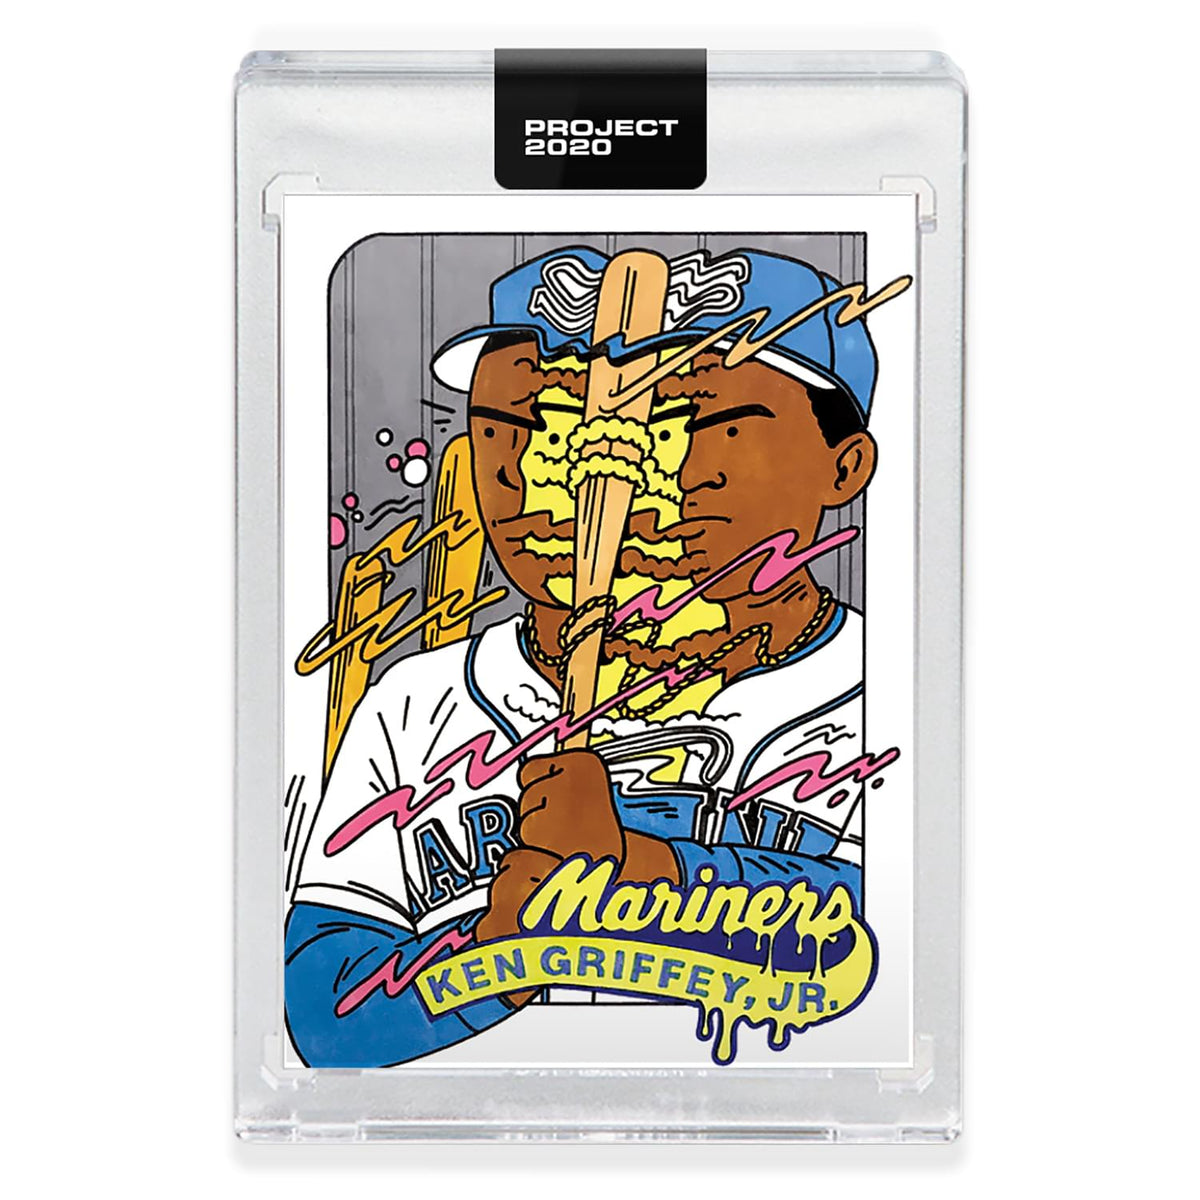 Topps PROJECT 2020 Card 300 - 1989 Ken Griffey Jr. by Ermsy